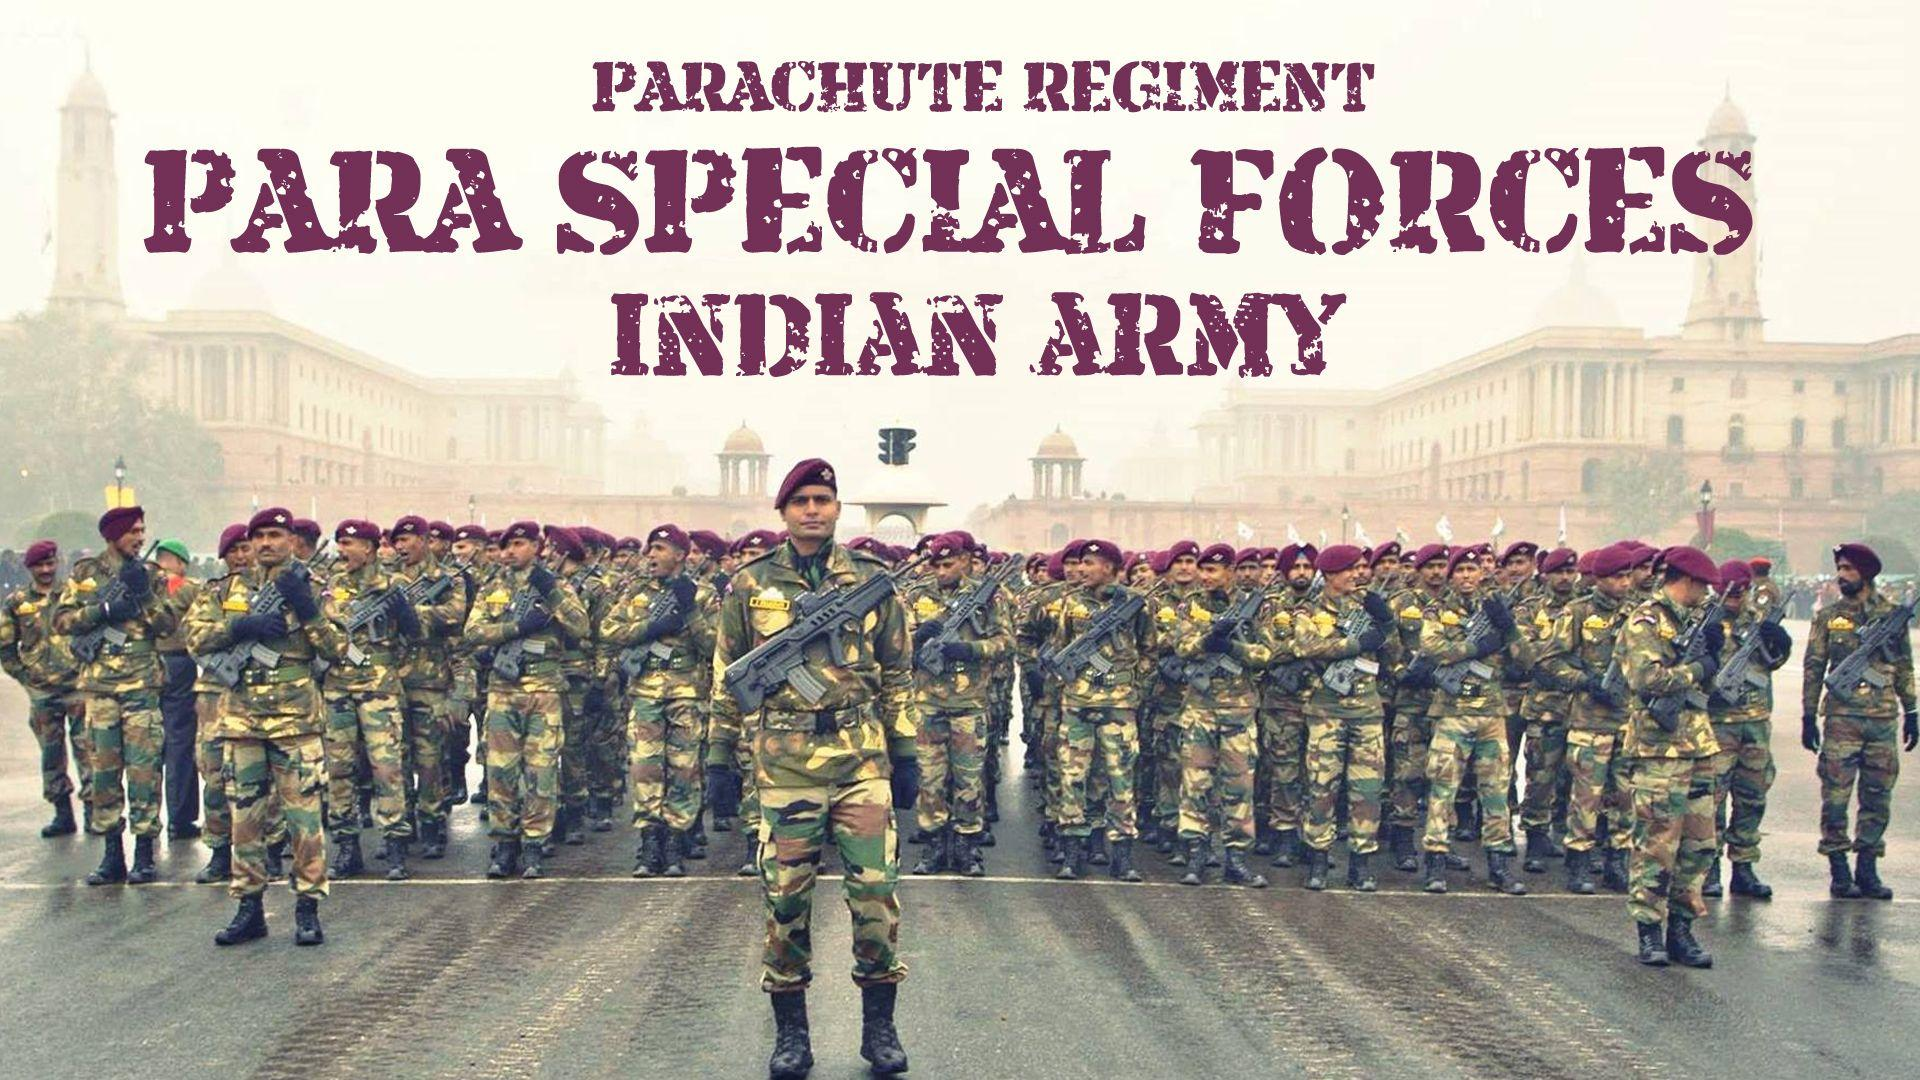 Indian Army Hd Wallpapers For Mobile Wallpaper Cave